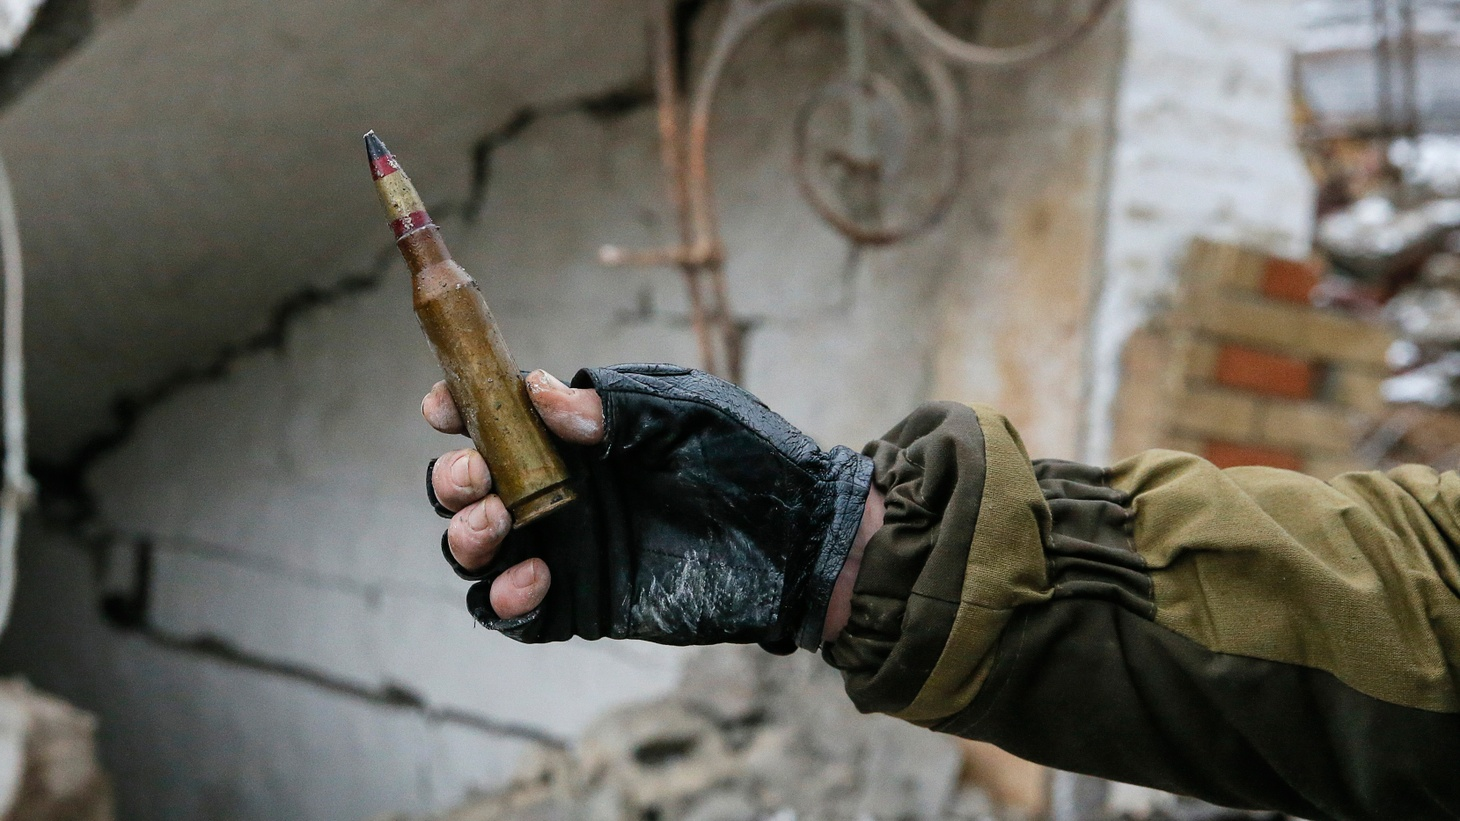 With civilian casualties mounting from indiscriminant shelling, UN officials today condemned both the Ukrainian army and separatists backed by Russia. High-level former officials want the Obama Administration to change course and equip Ukraine with sophisticated and accurate weapons.